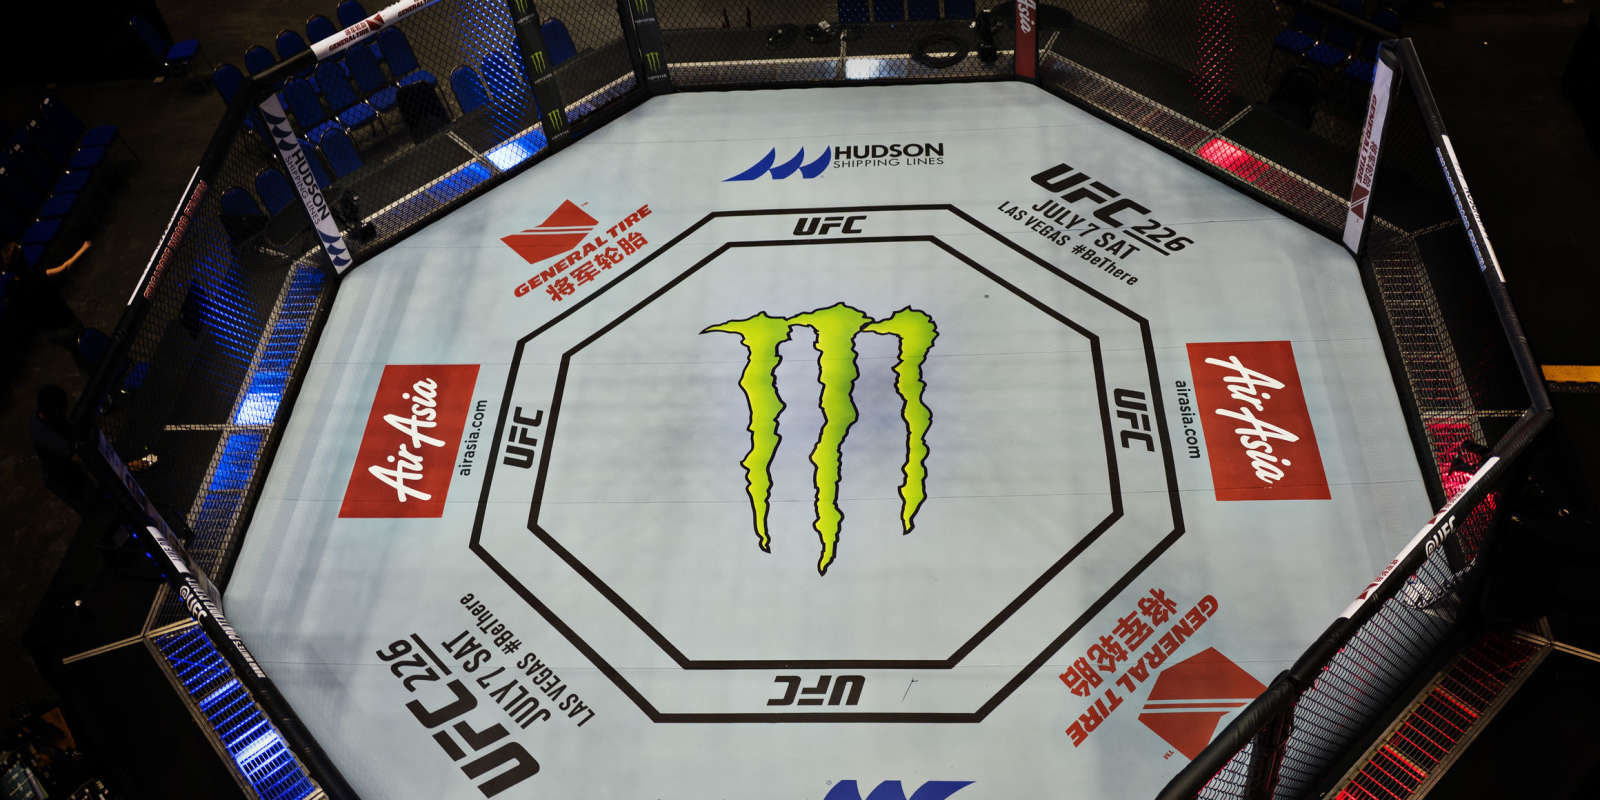 UFC signs three-year deal with Monster Energy to become official water and energy drink partner - Monster Energy